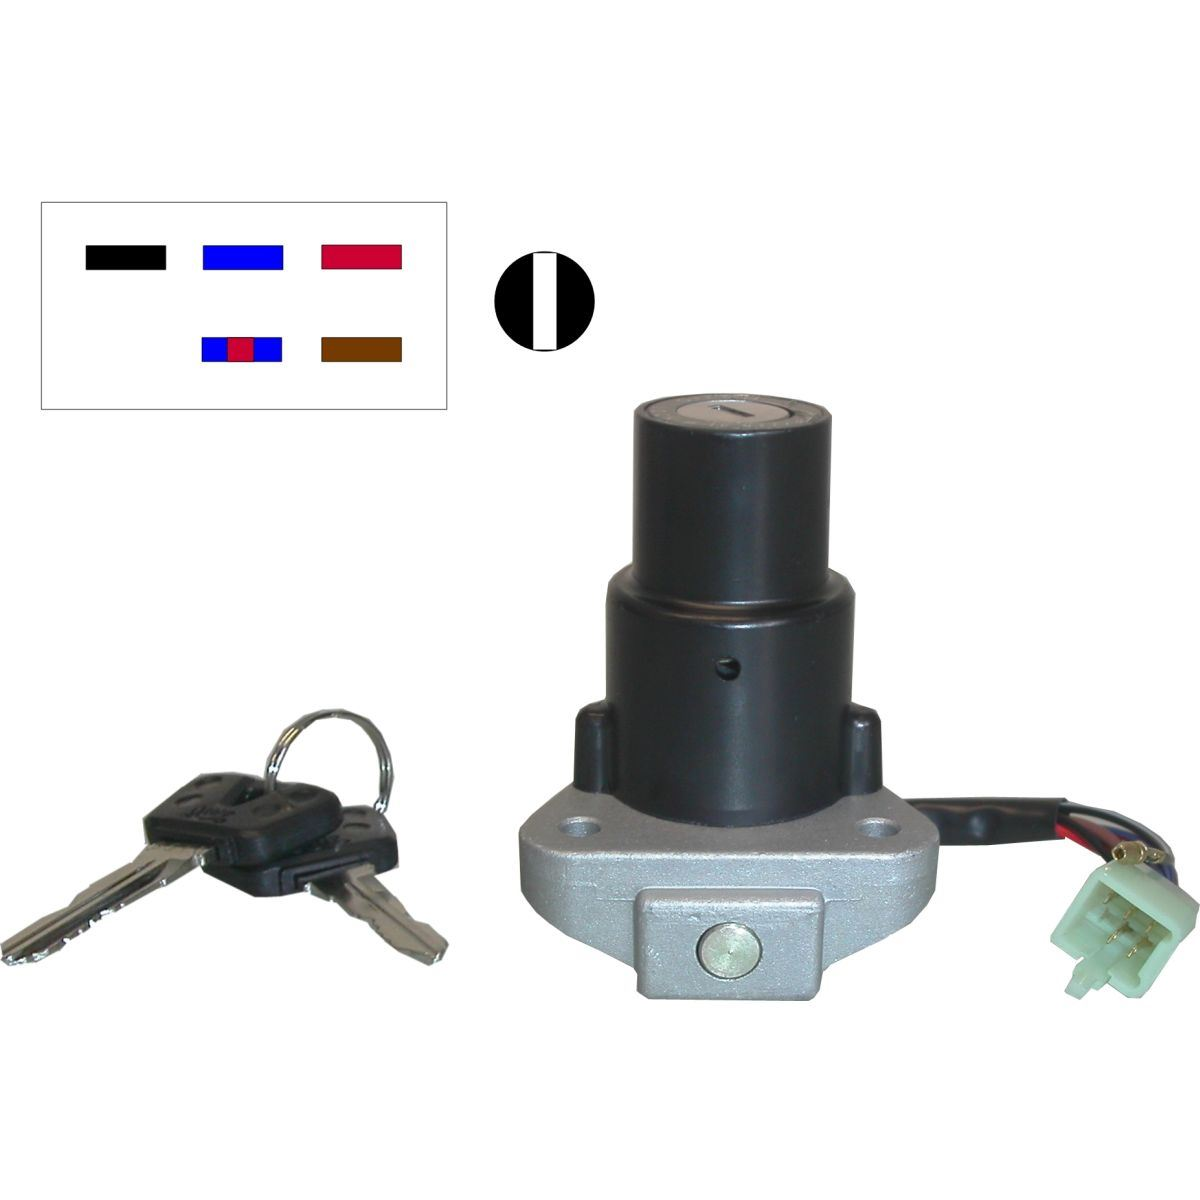 Details about Ignition Switch for 1986 Yamaha RD 125 LC Mk 2 (2HK)